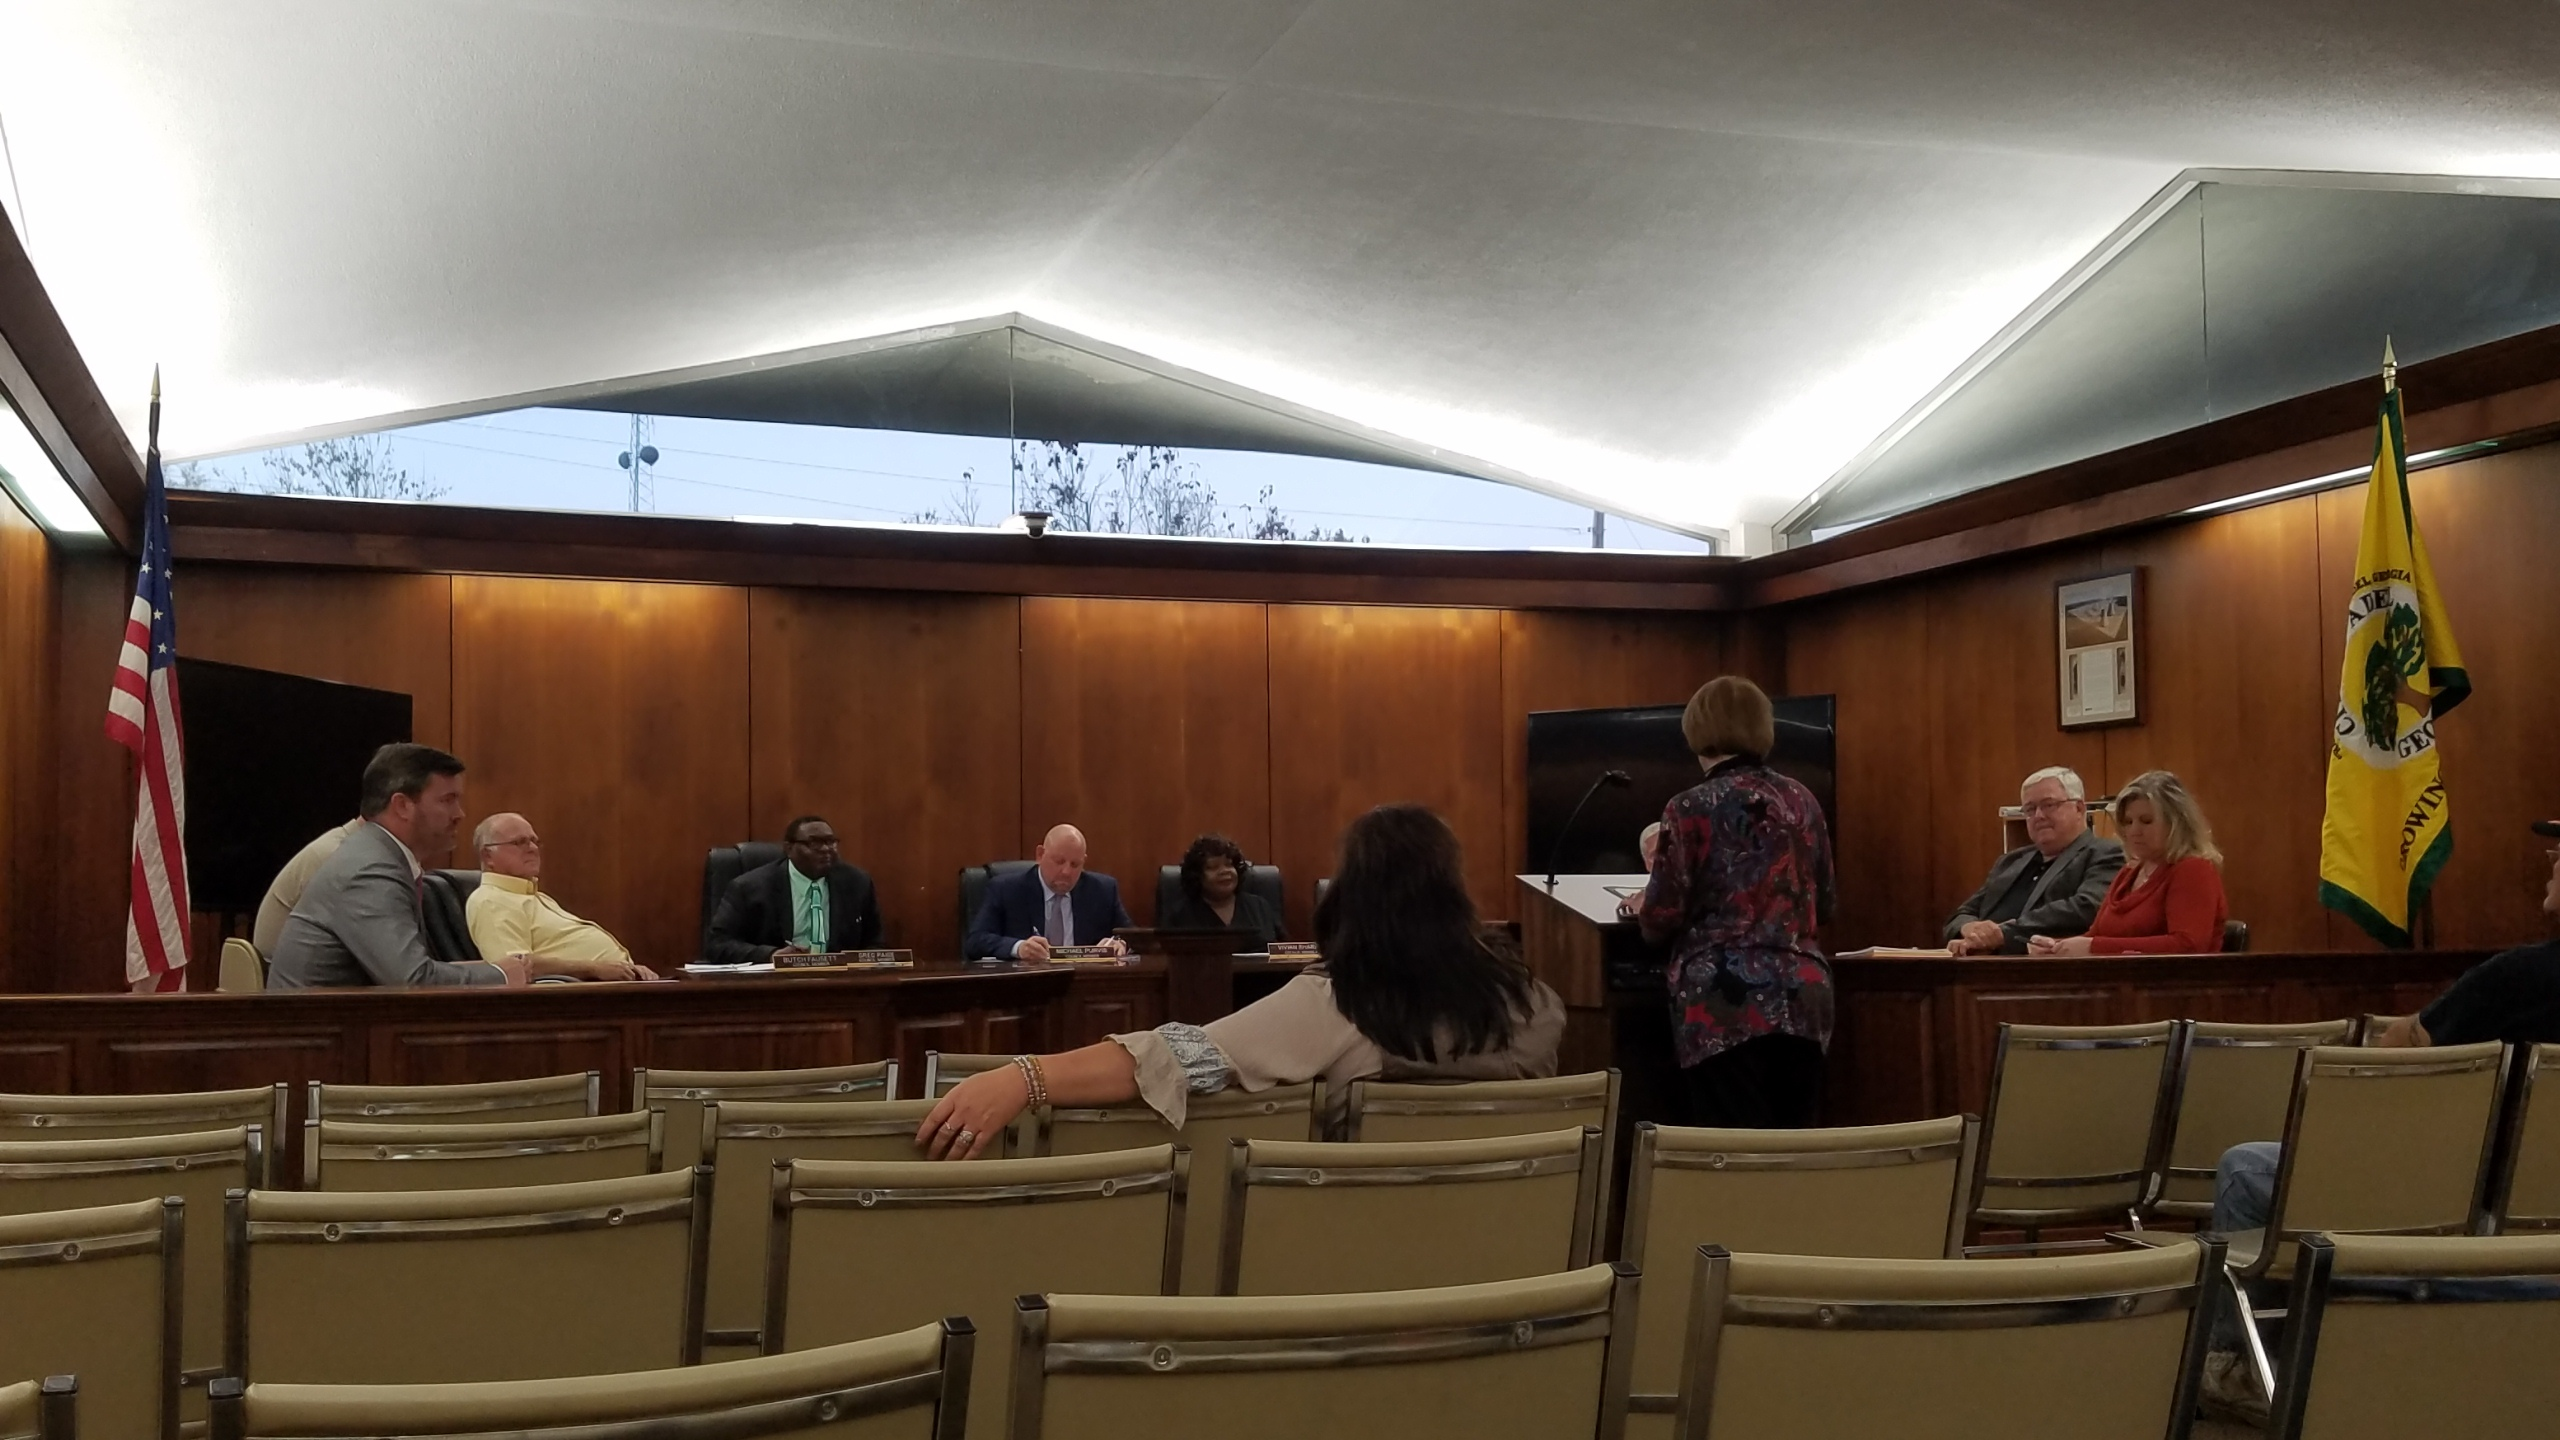 2560x1440 Mayor, Council, Staff, Meeting, in Adel City Council, by John S. Quarterman, for WWALS.net, 4 December 2017